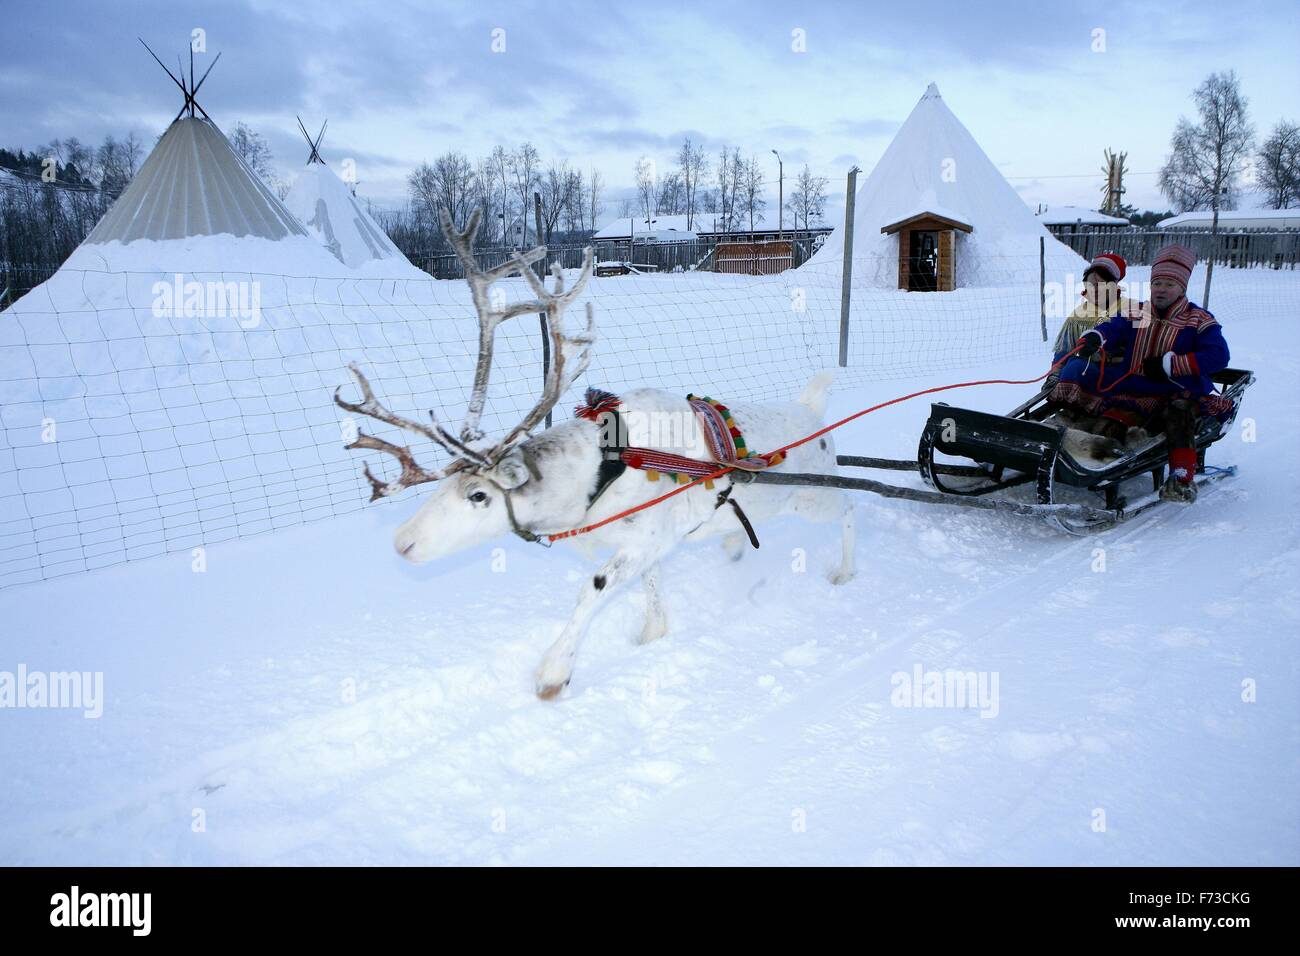 sleigh pulled by reindeer in a village Sami. Boazo Siida Sami camp. - Stock Image